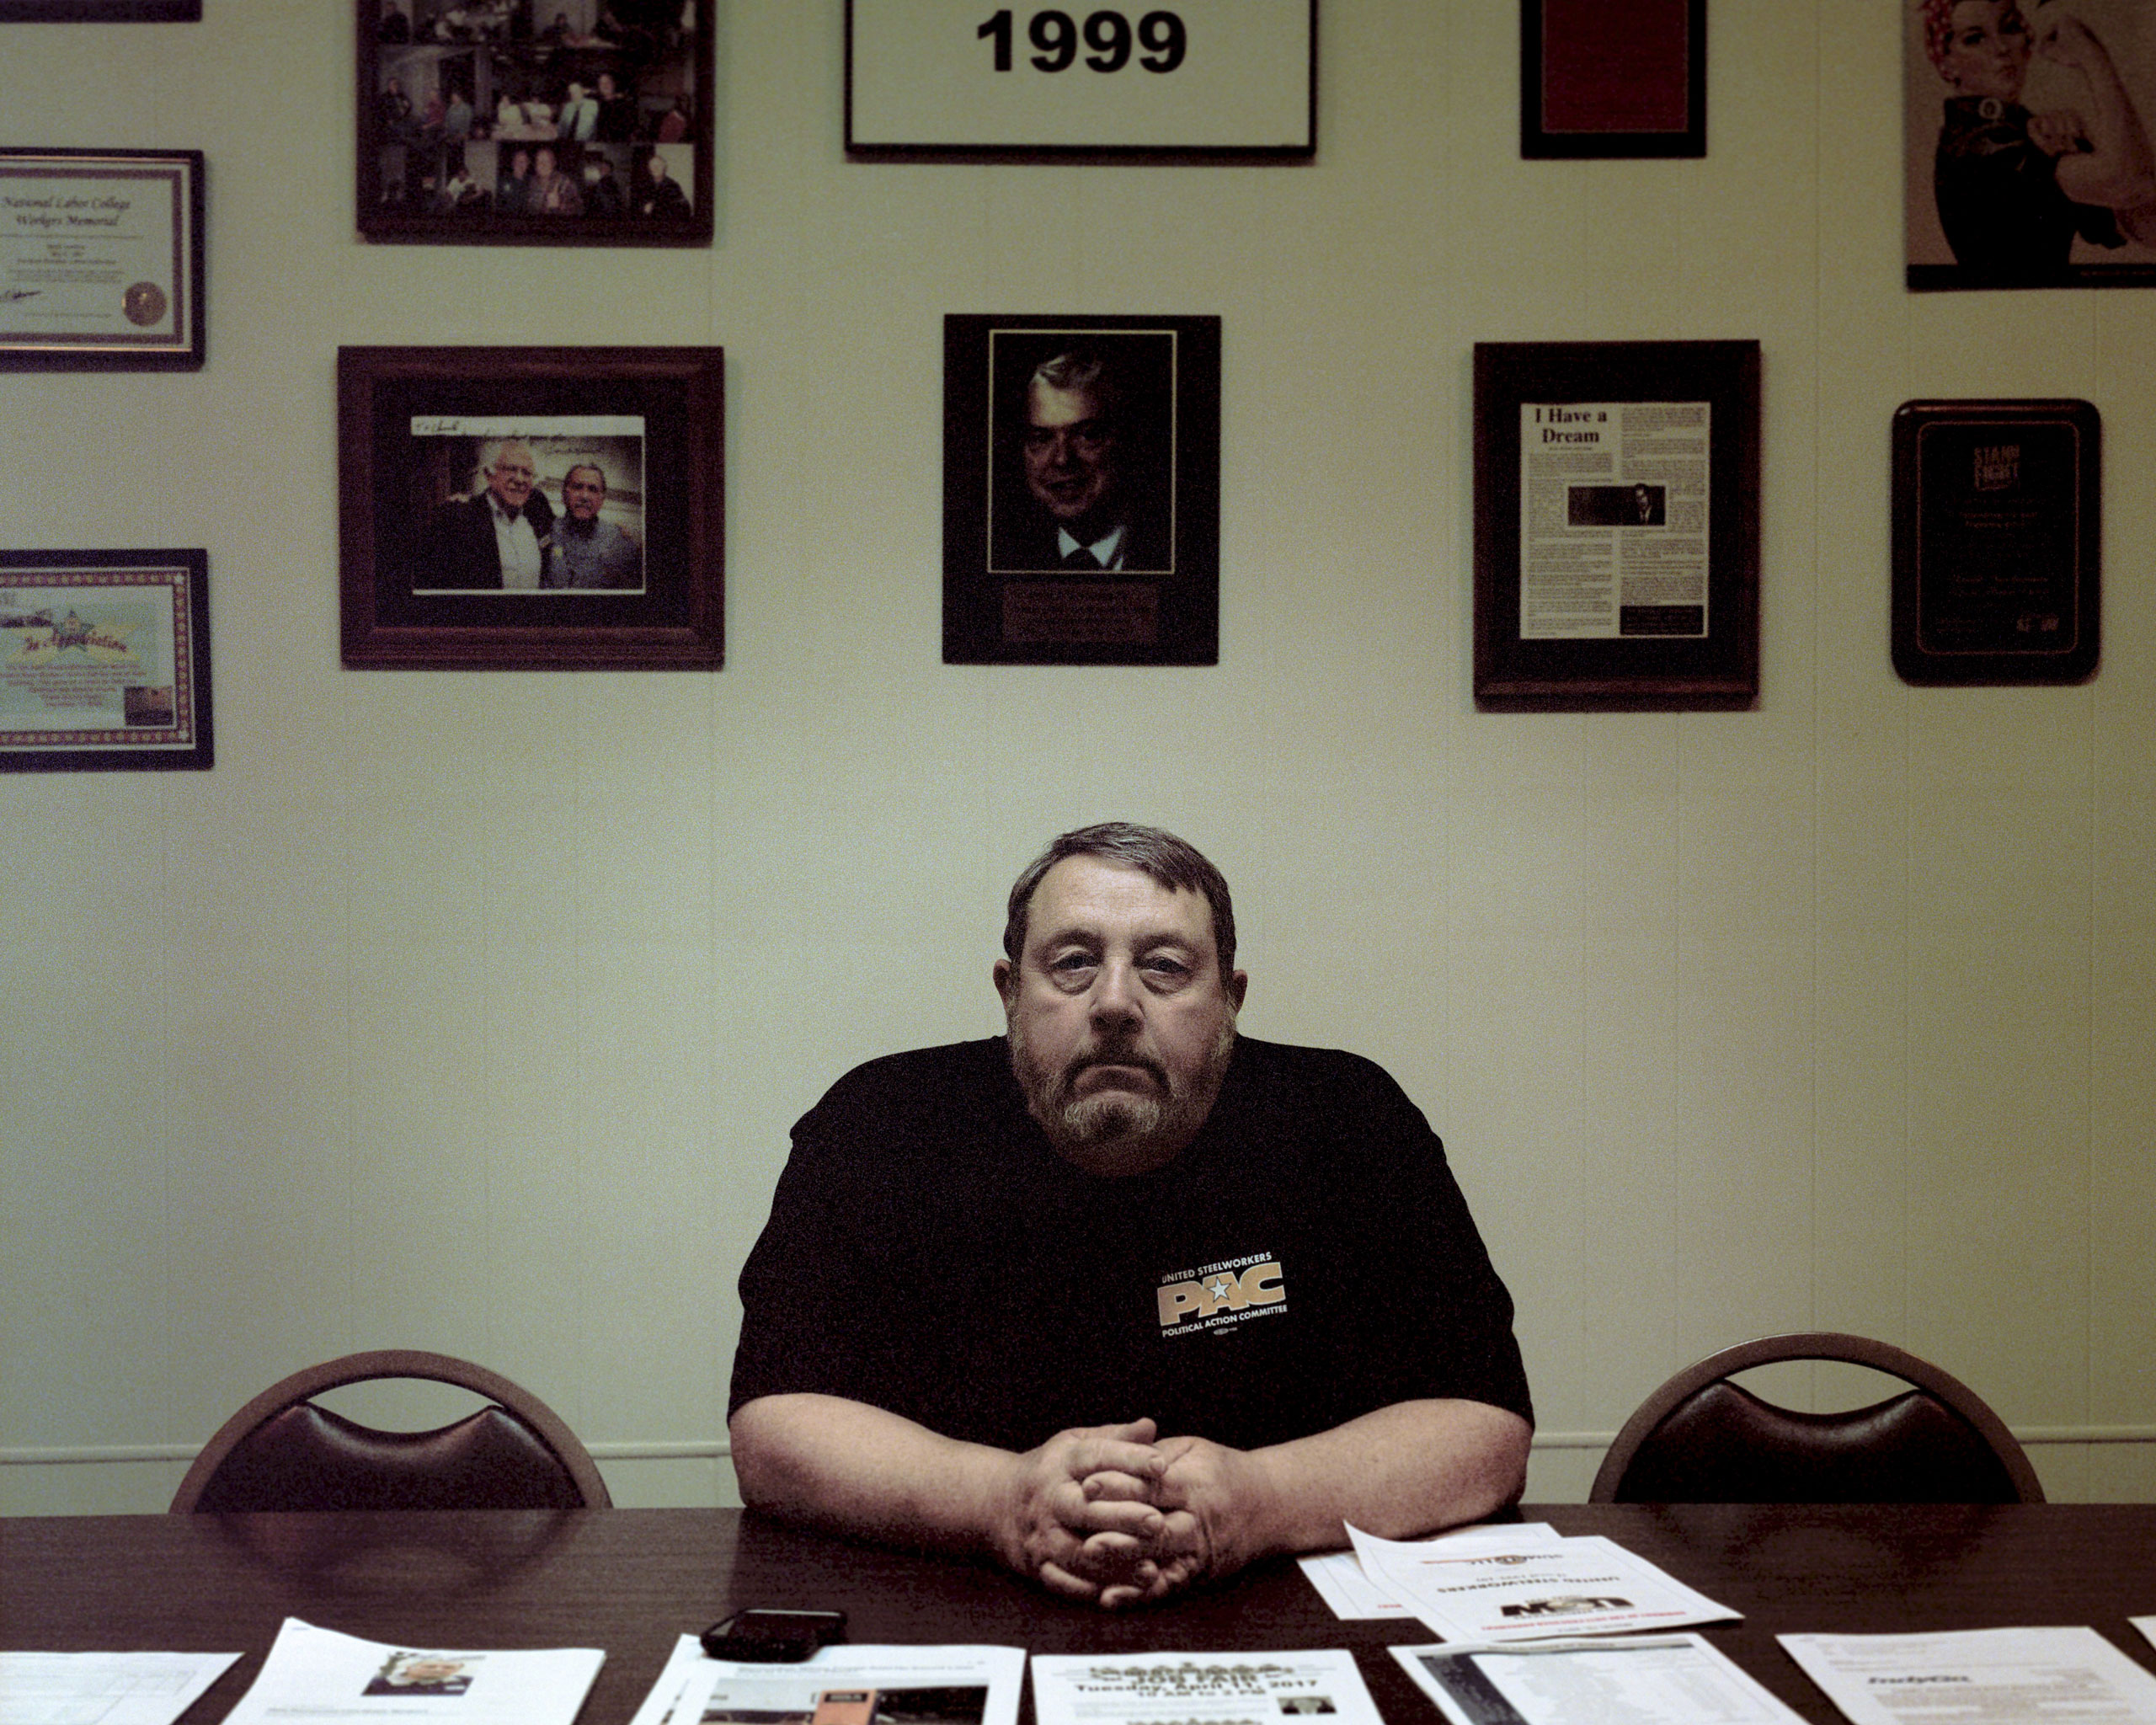 Don Zering, Rexnord's union rep, at the United Steelworkers Local 1999; he's worked at the company for 44 years